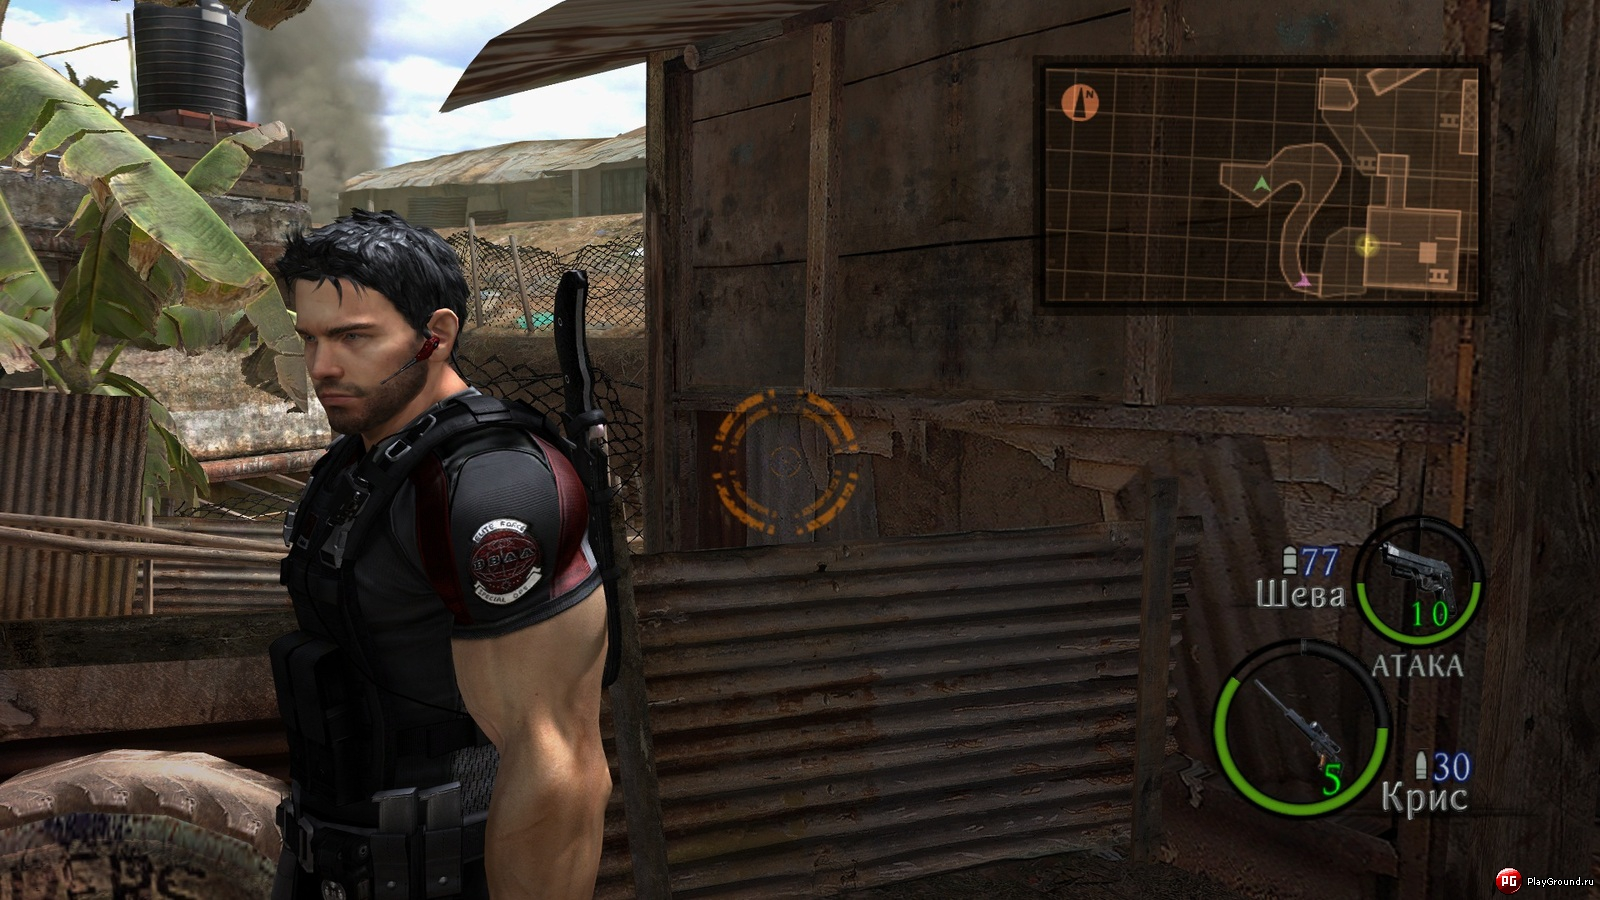 New Chris REDfield 0_107949_799c1d56_orig